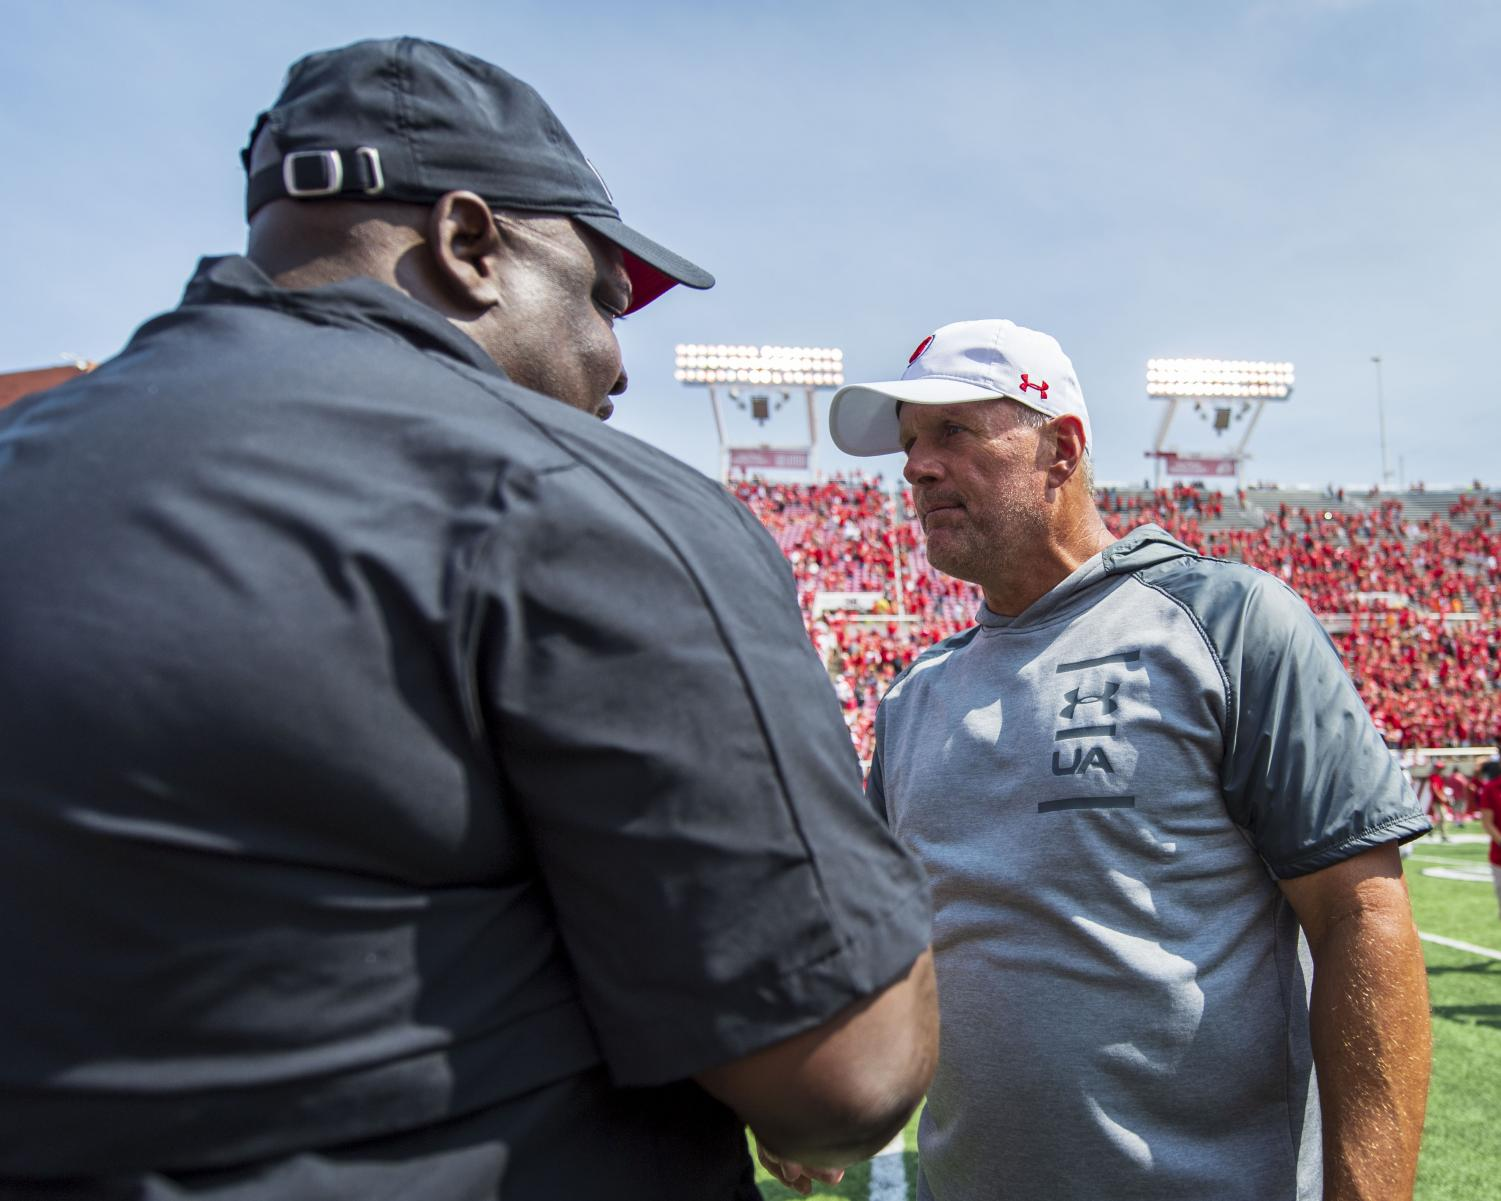 Northern Illinois University football head coach Thomas Hammock congratulates University of Utah football head coach Kyle Whittingham following an NCAA Football game at Rice Eccles Stadium in Salt Lake City, Utah on Saturday, Sept. 7, 2019. (Photo by Kiffer Creveling | The Daily Utah Chronicle)